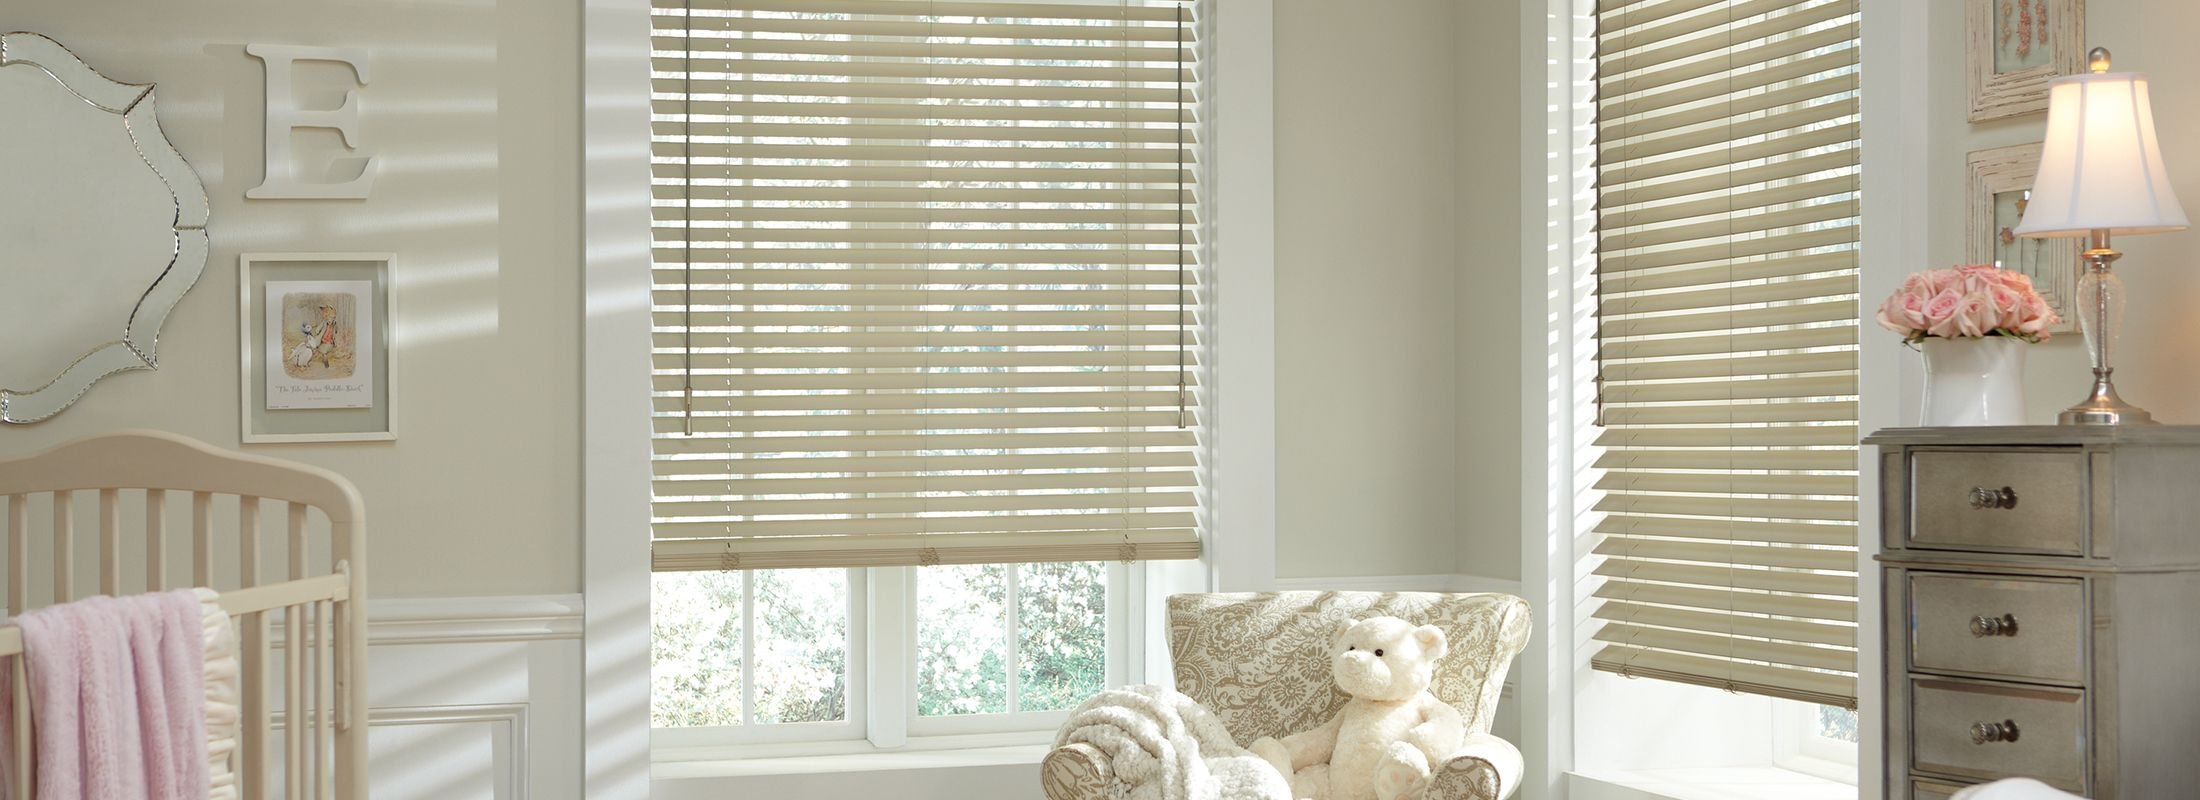 Wooden blinds in Classics™ Basswood Malted Milk - Parkland